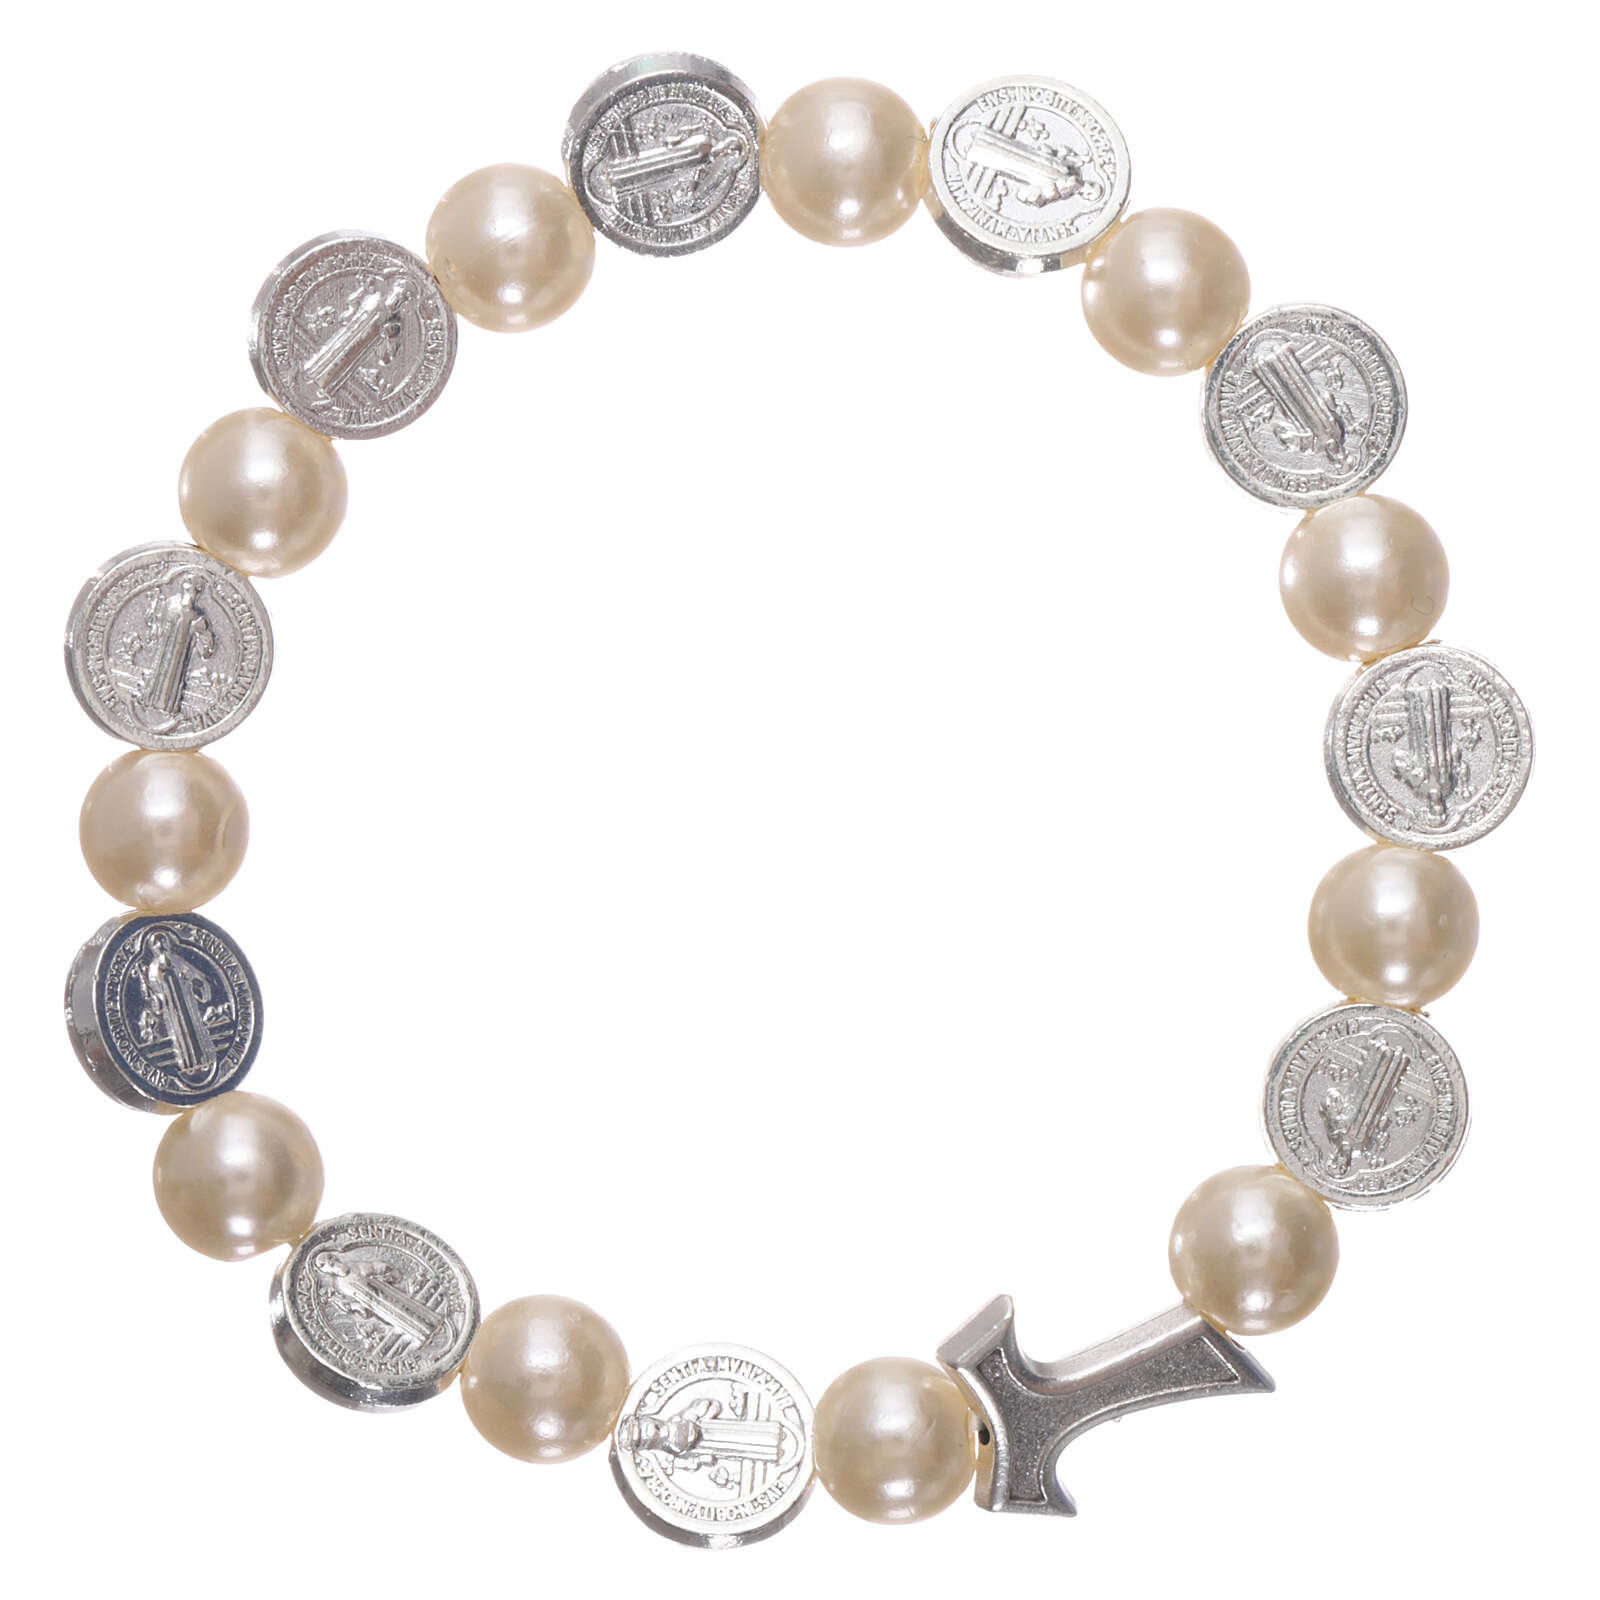 One decade rosary bracelet in plastic with metal Tau cross and 5x6 mm beads, St Benedict 4